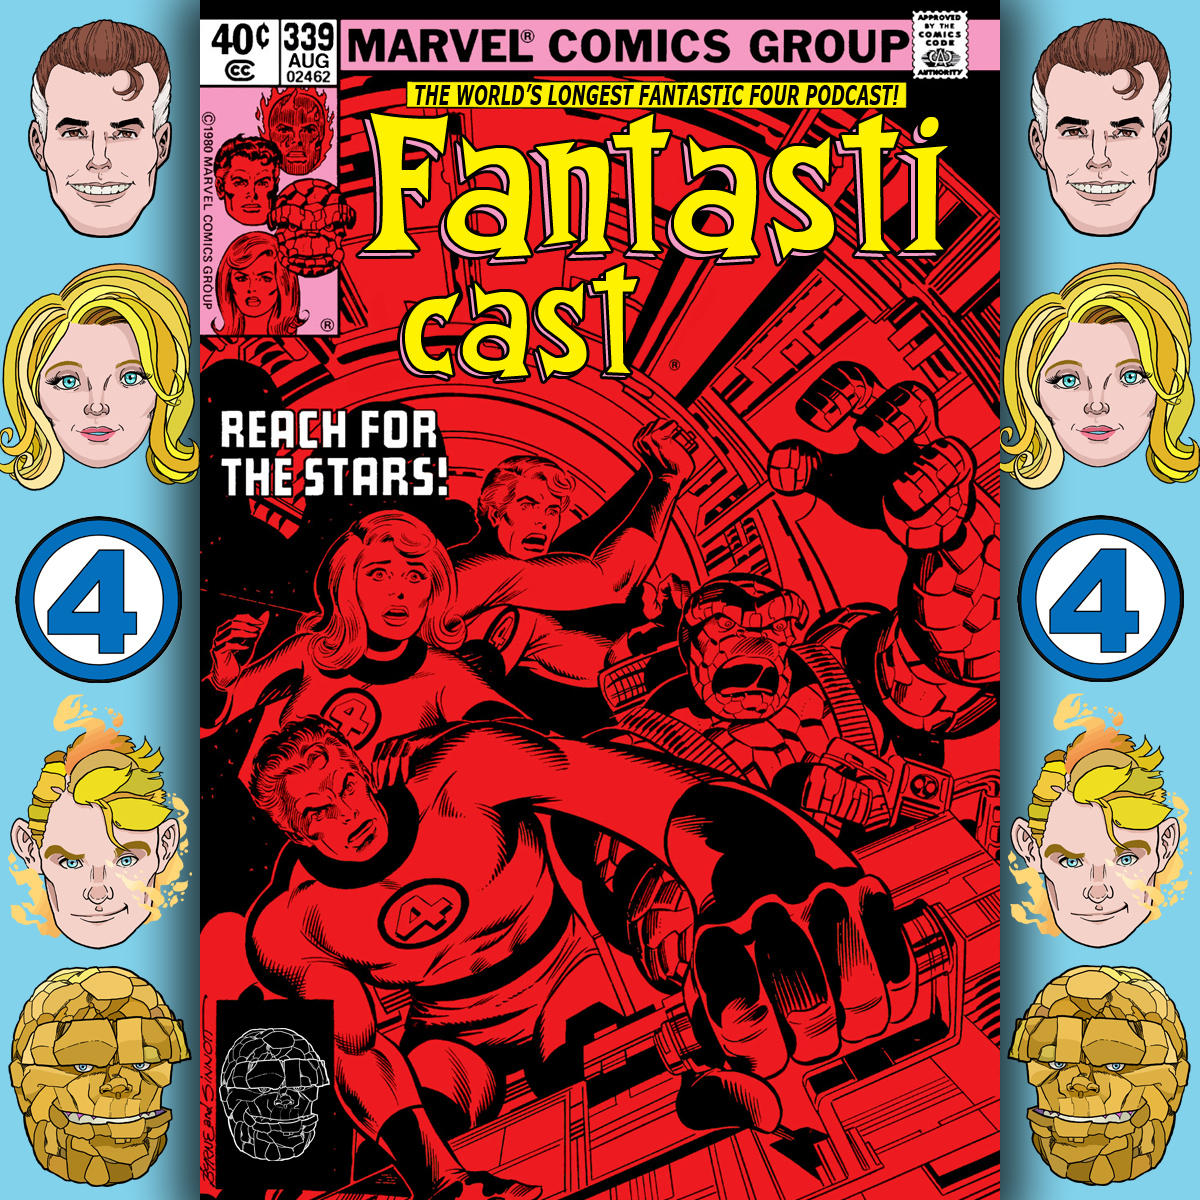 The Fantasticast Episode 339